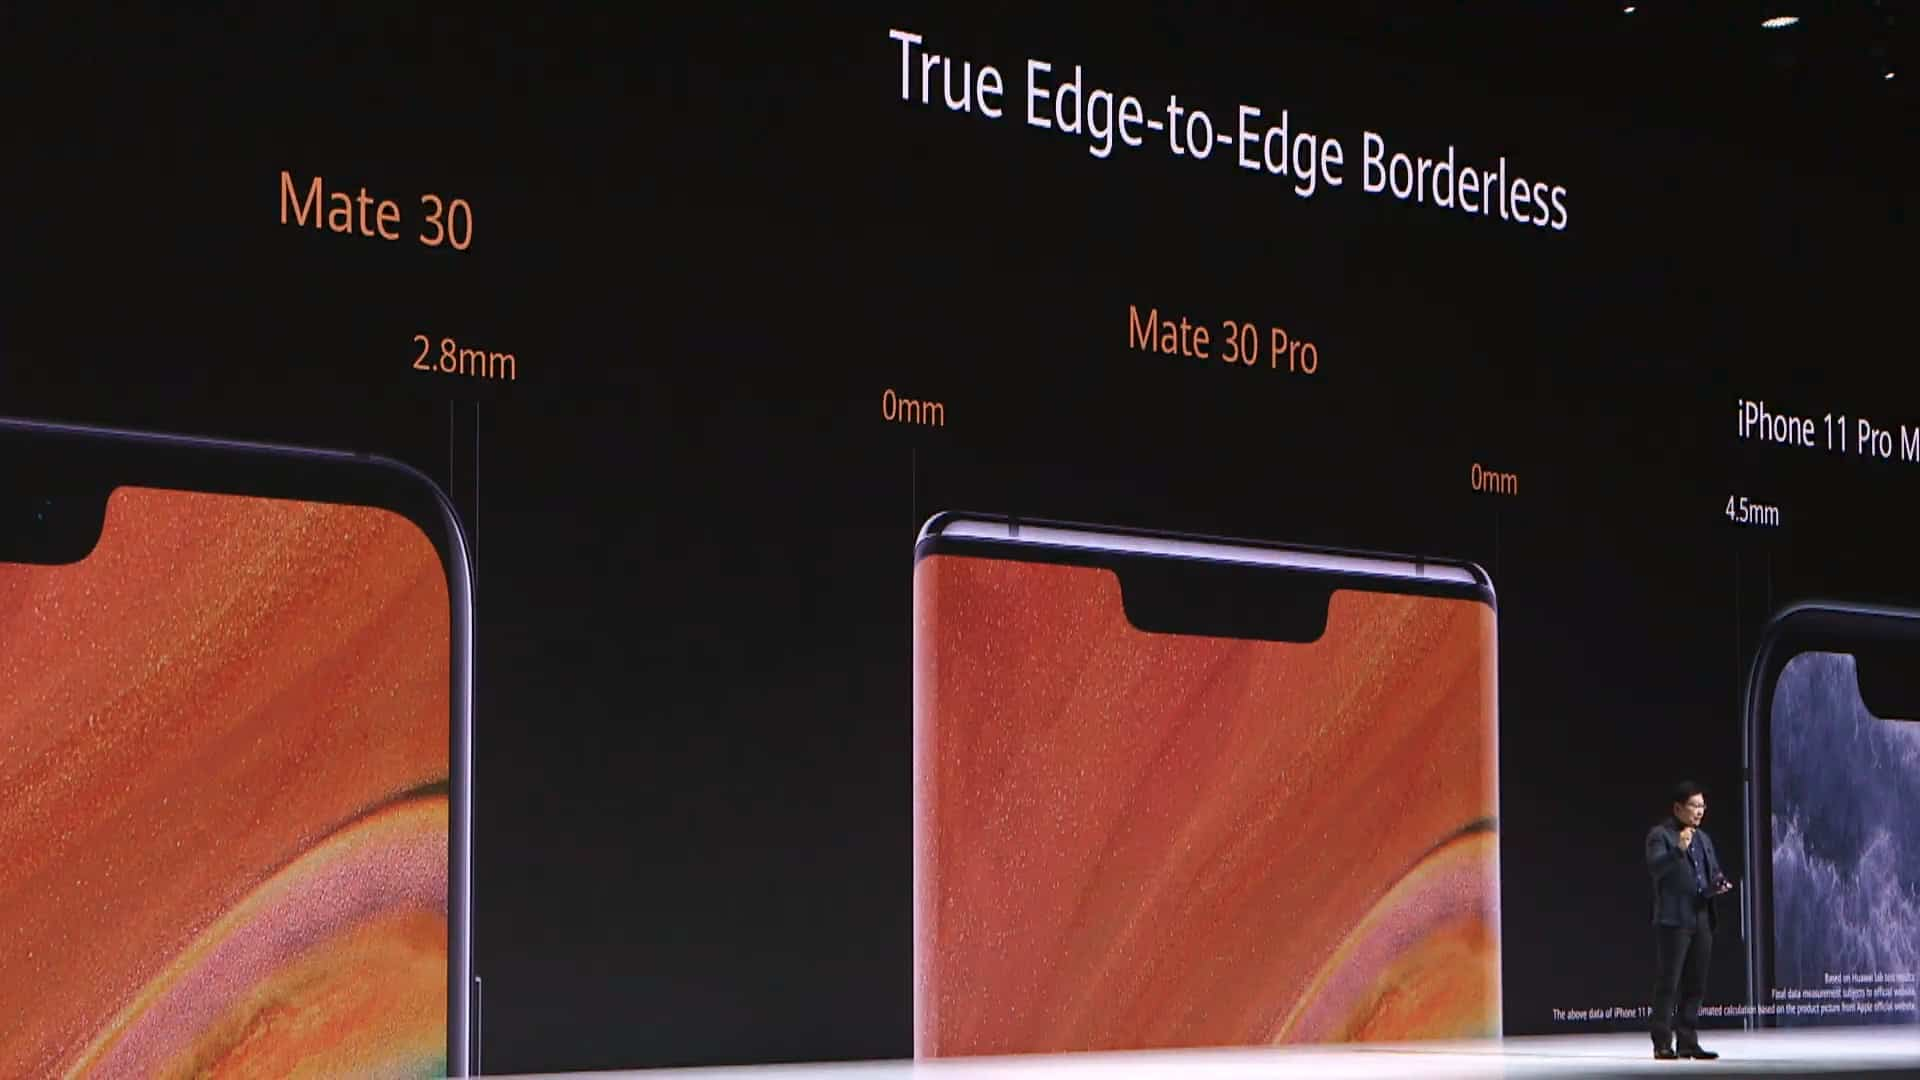 Huawei Mate 30 and Mate 30 Pro event image 4